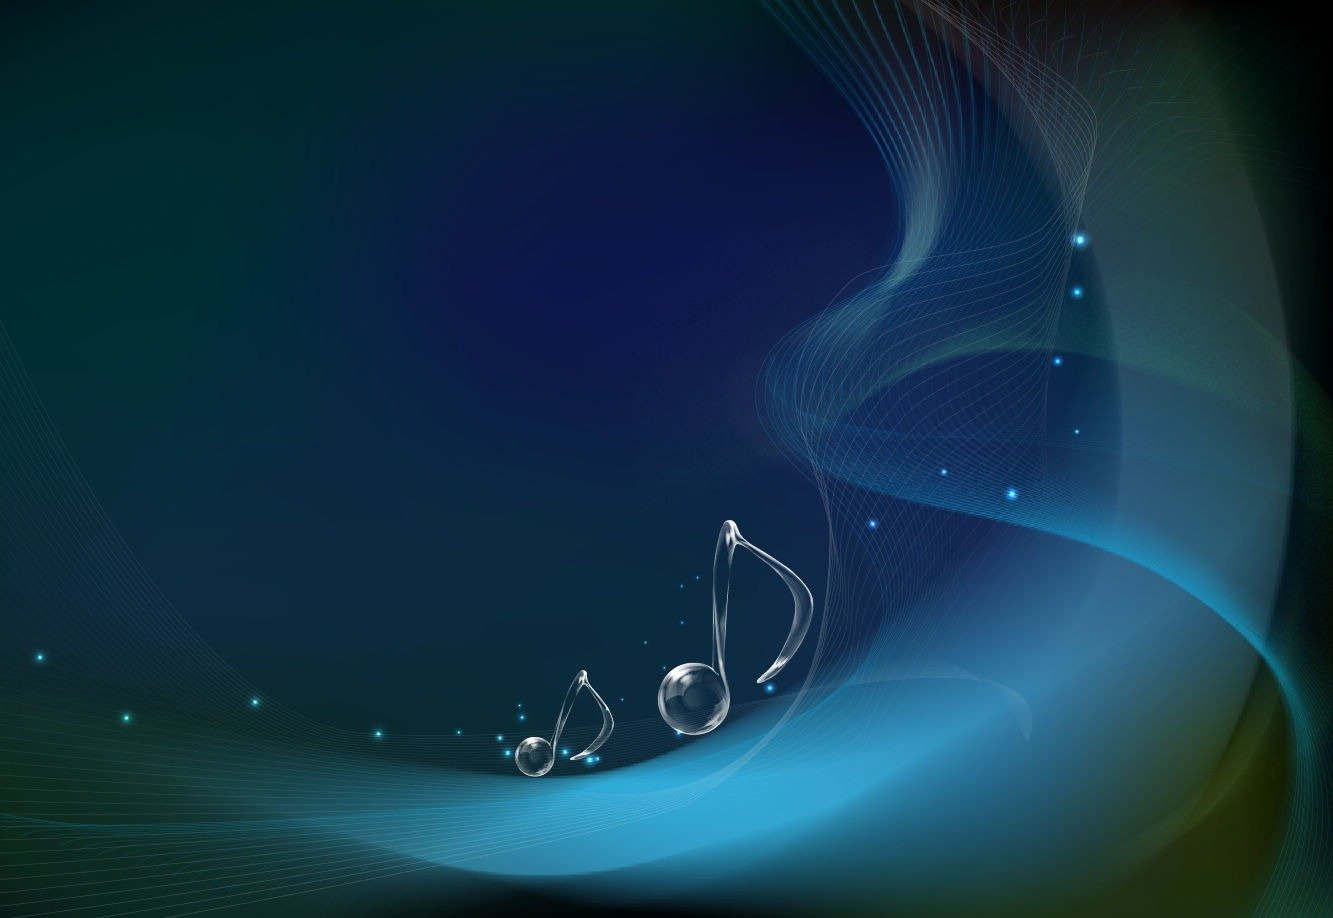 Abstract Art Music Notes Background 1 Hd Wallpapers: Blue Music Notes Wallpaper